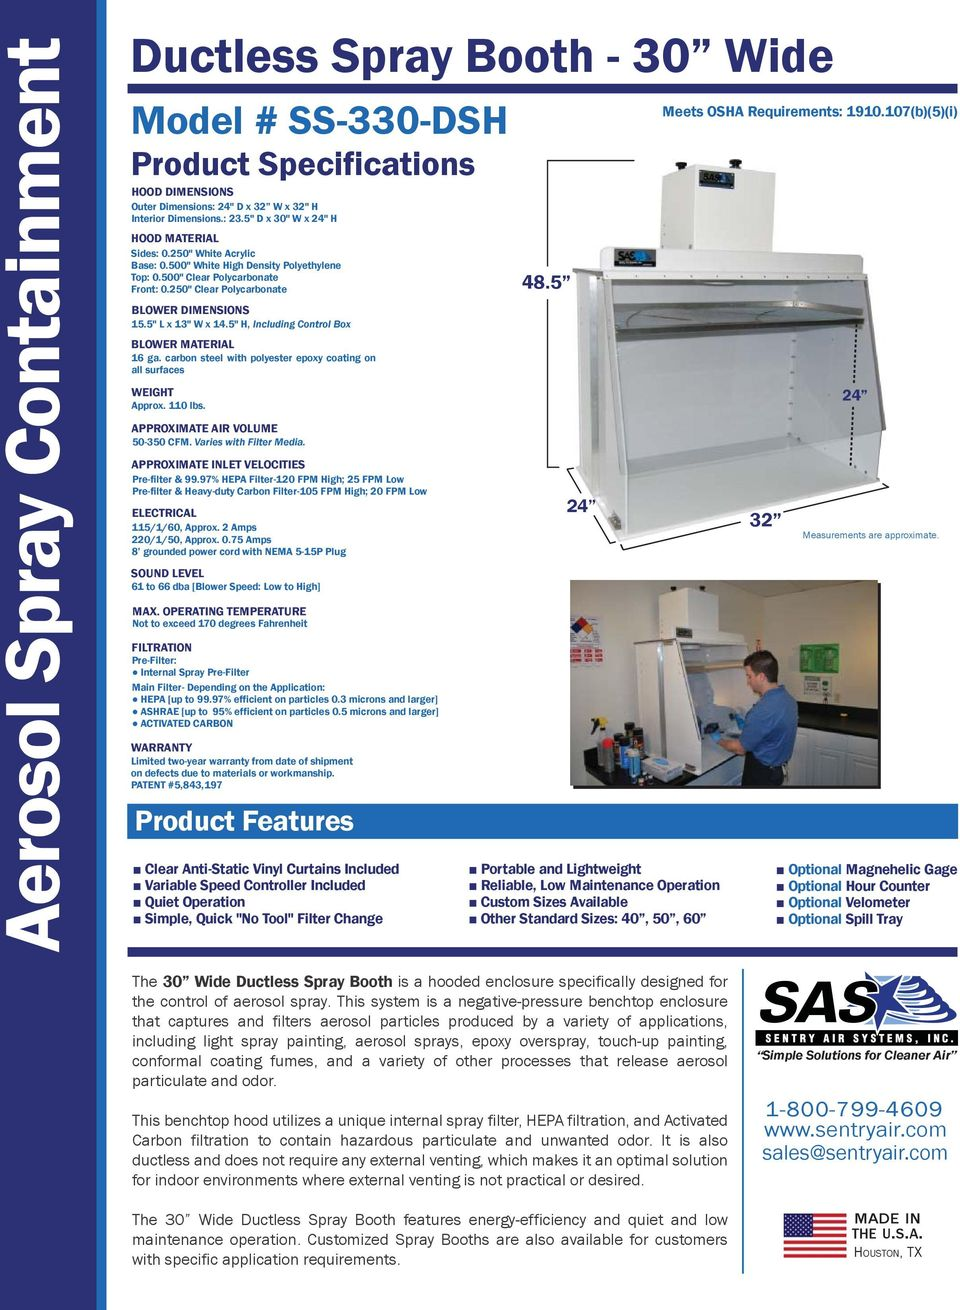 Ductless Spray Booth Series - PDF